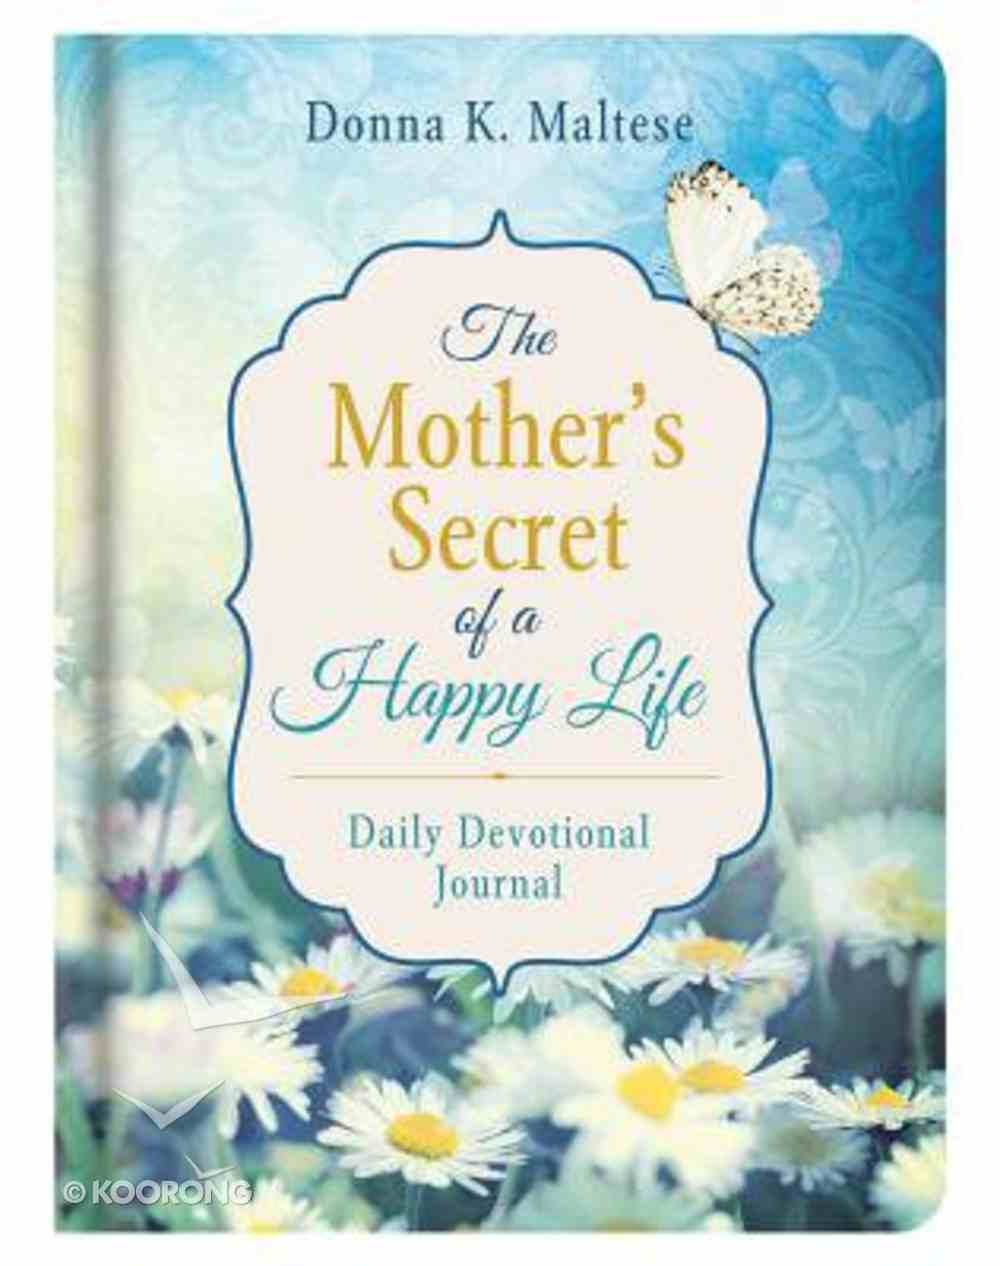 The Mother's Secret of a Happy Life Daily Devotional Journal Hardback